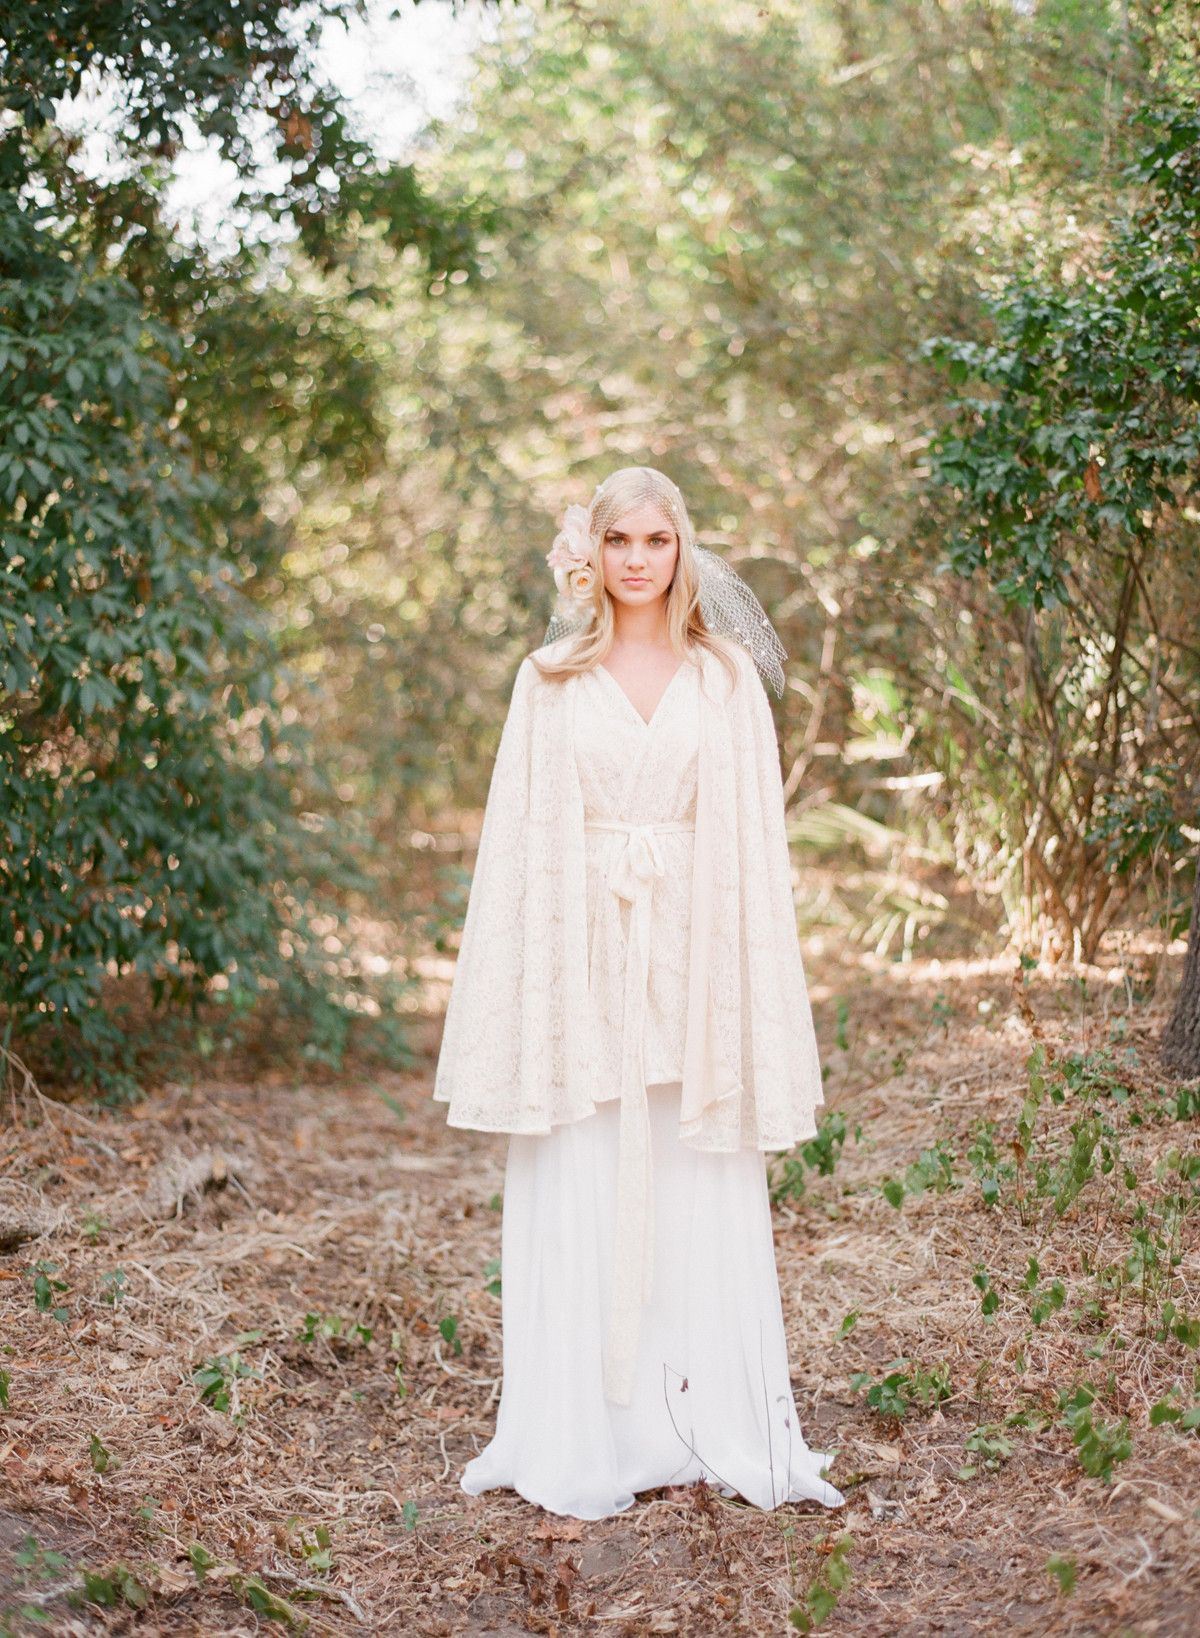 Lace dress cover up  Lavendula  Lace cape  All things fantasy magical mystical